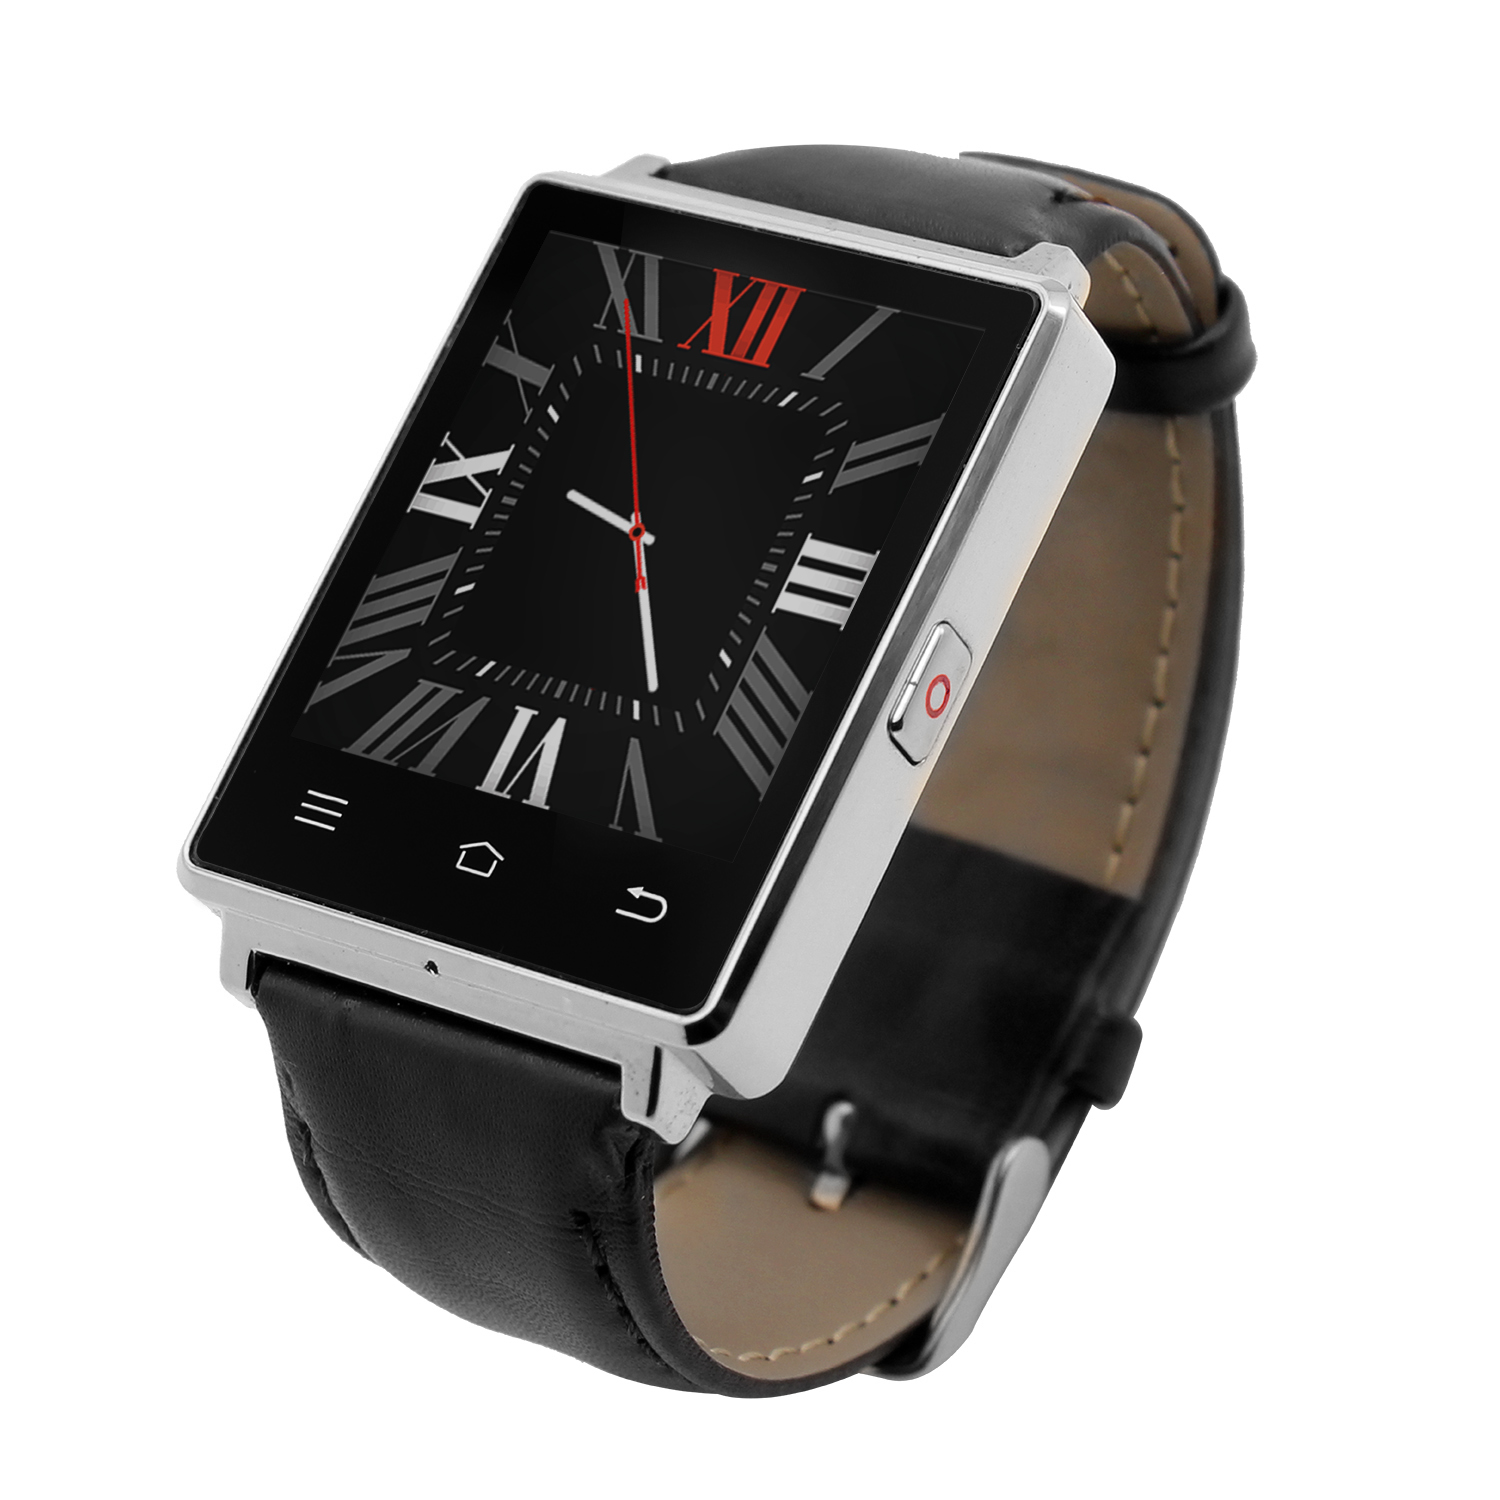 Bluetooth Smart Watches Andorid WIFI Heart Rate Monitor Smartwatch Health Wearable Devices for Android ISO iPhone with GPS(China (Mainland))